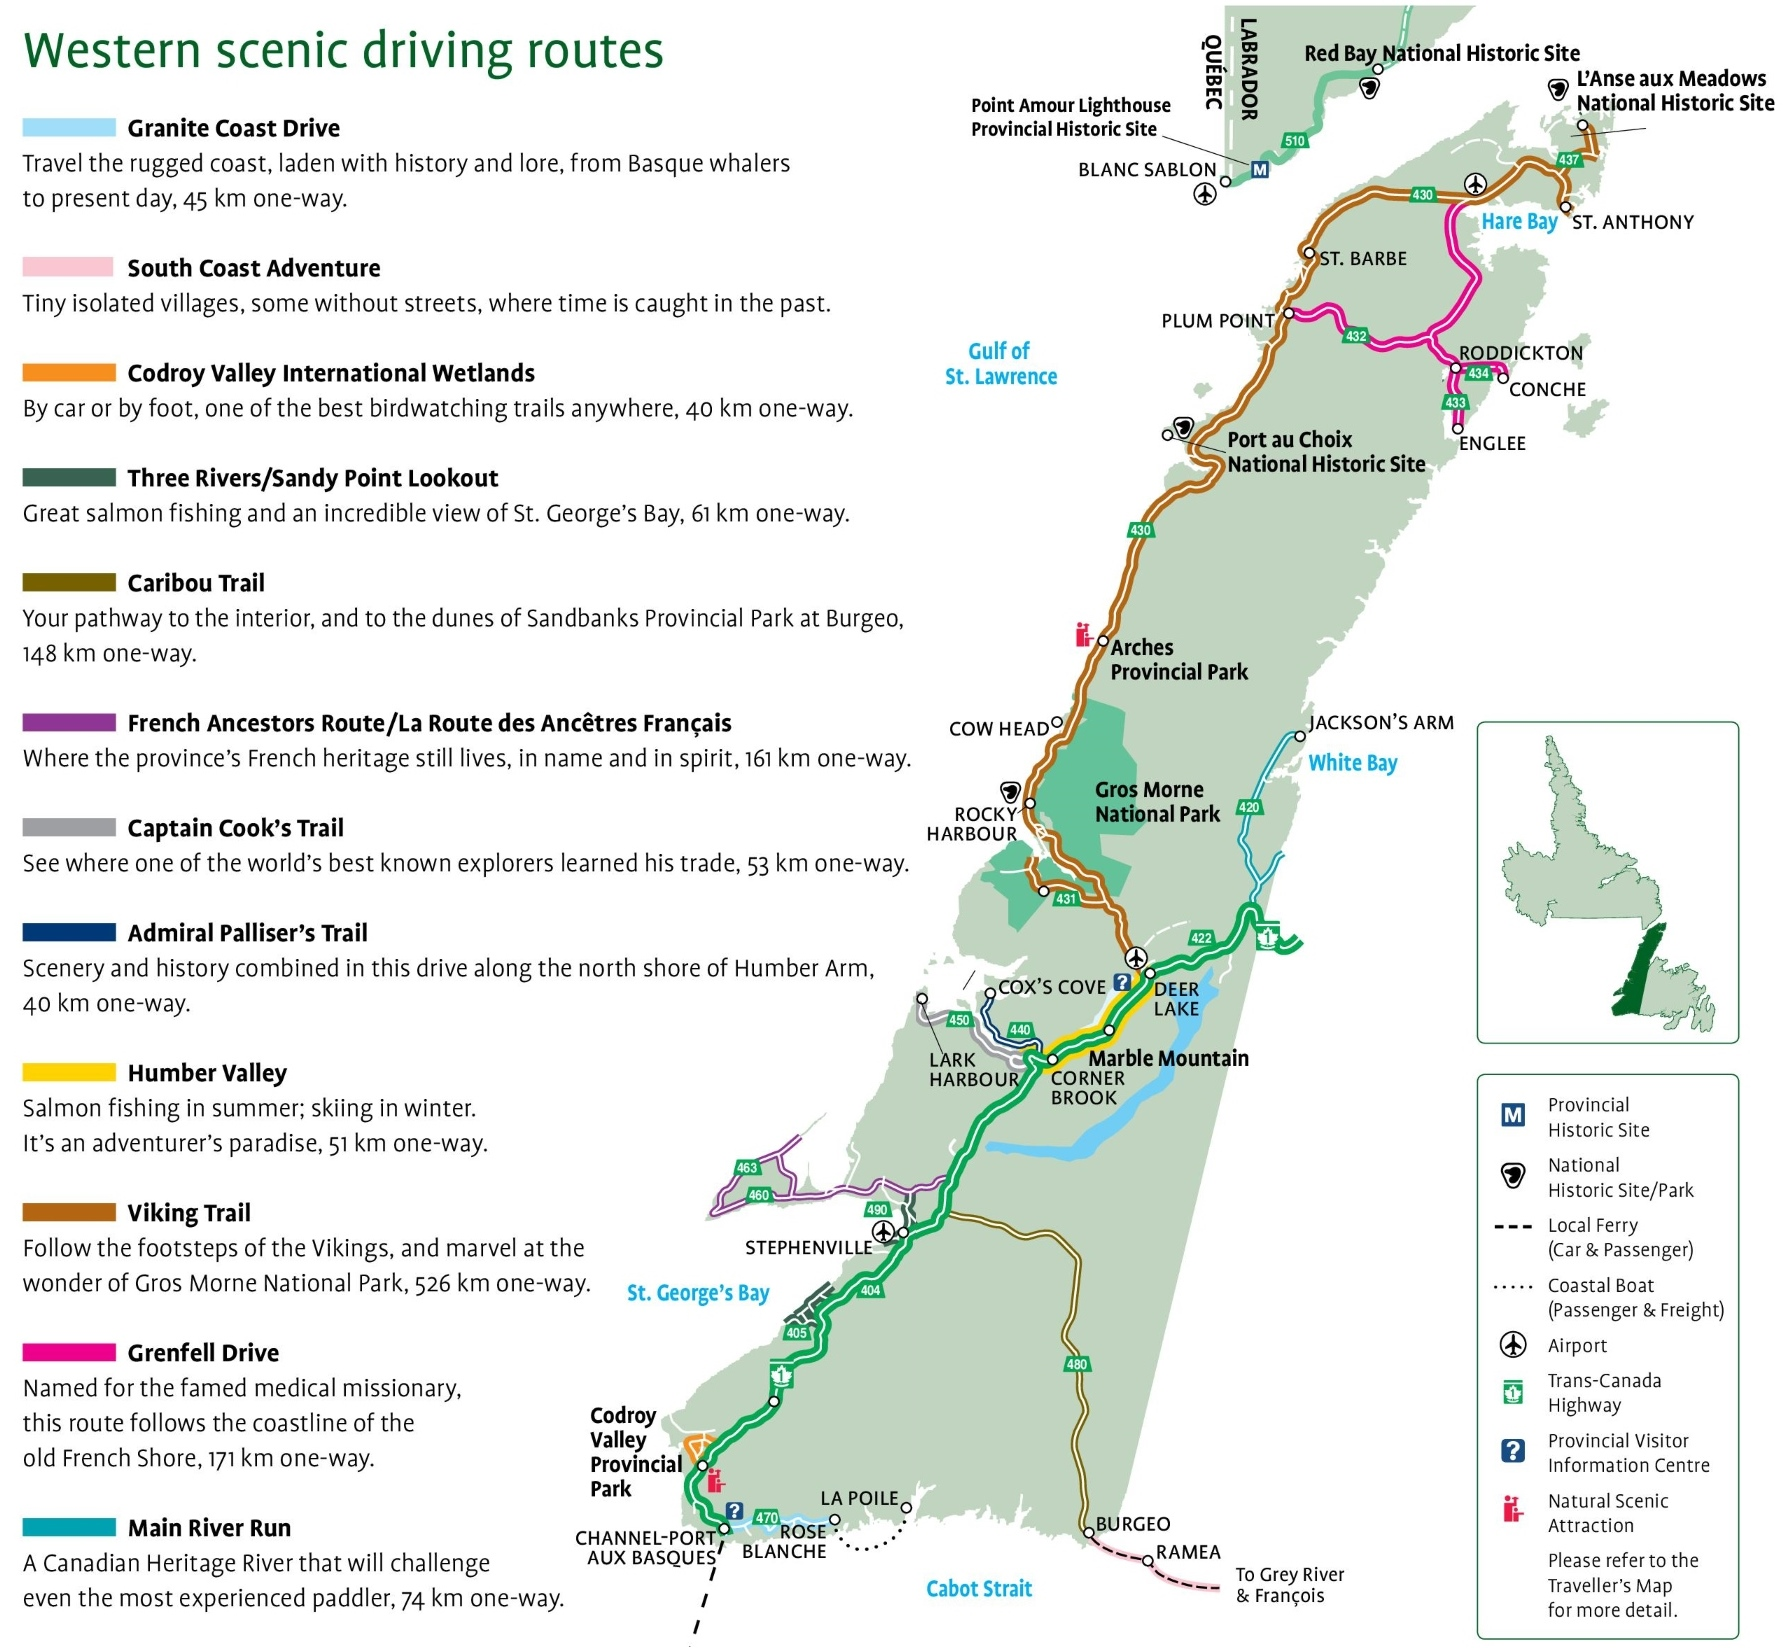 Western Newfoundland scenic driving routes map on get directions, follow directions, cardinal directions, calgary things to do, calgary maps and directions, calgary restaurants, a list on the map directions, calgary weather, calgary c-train schedule, calgary hotels,